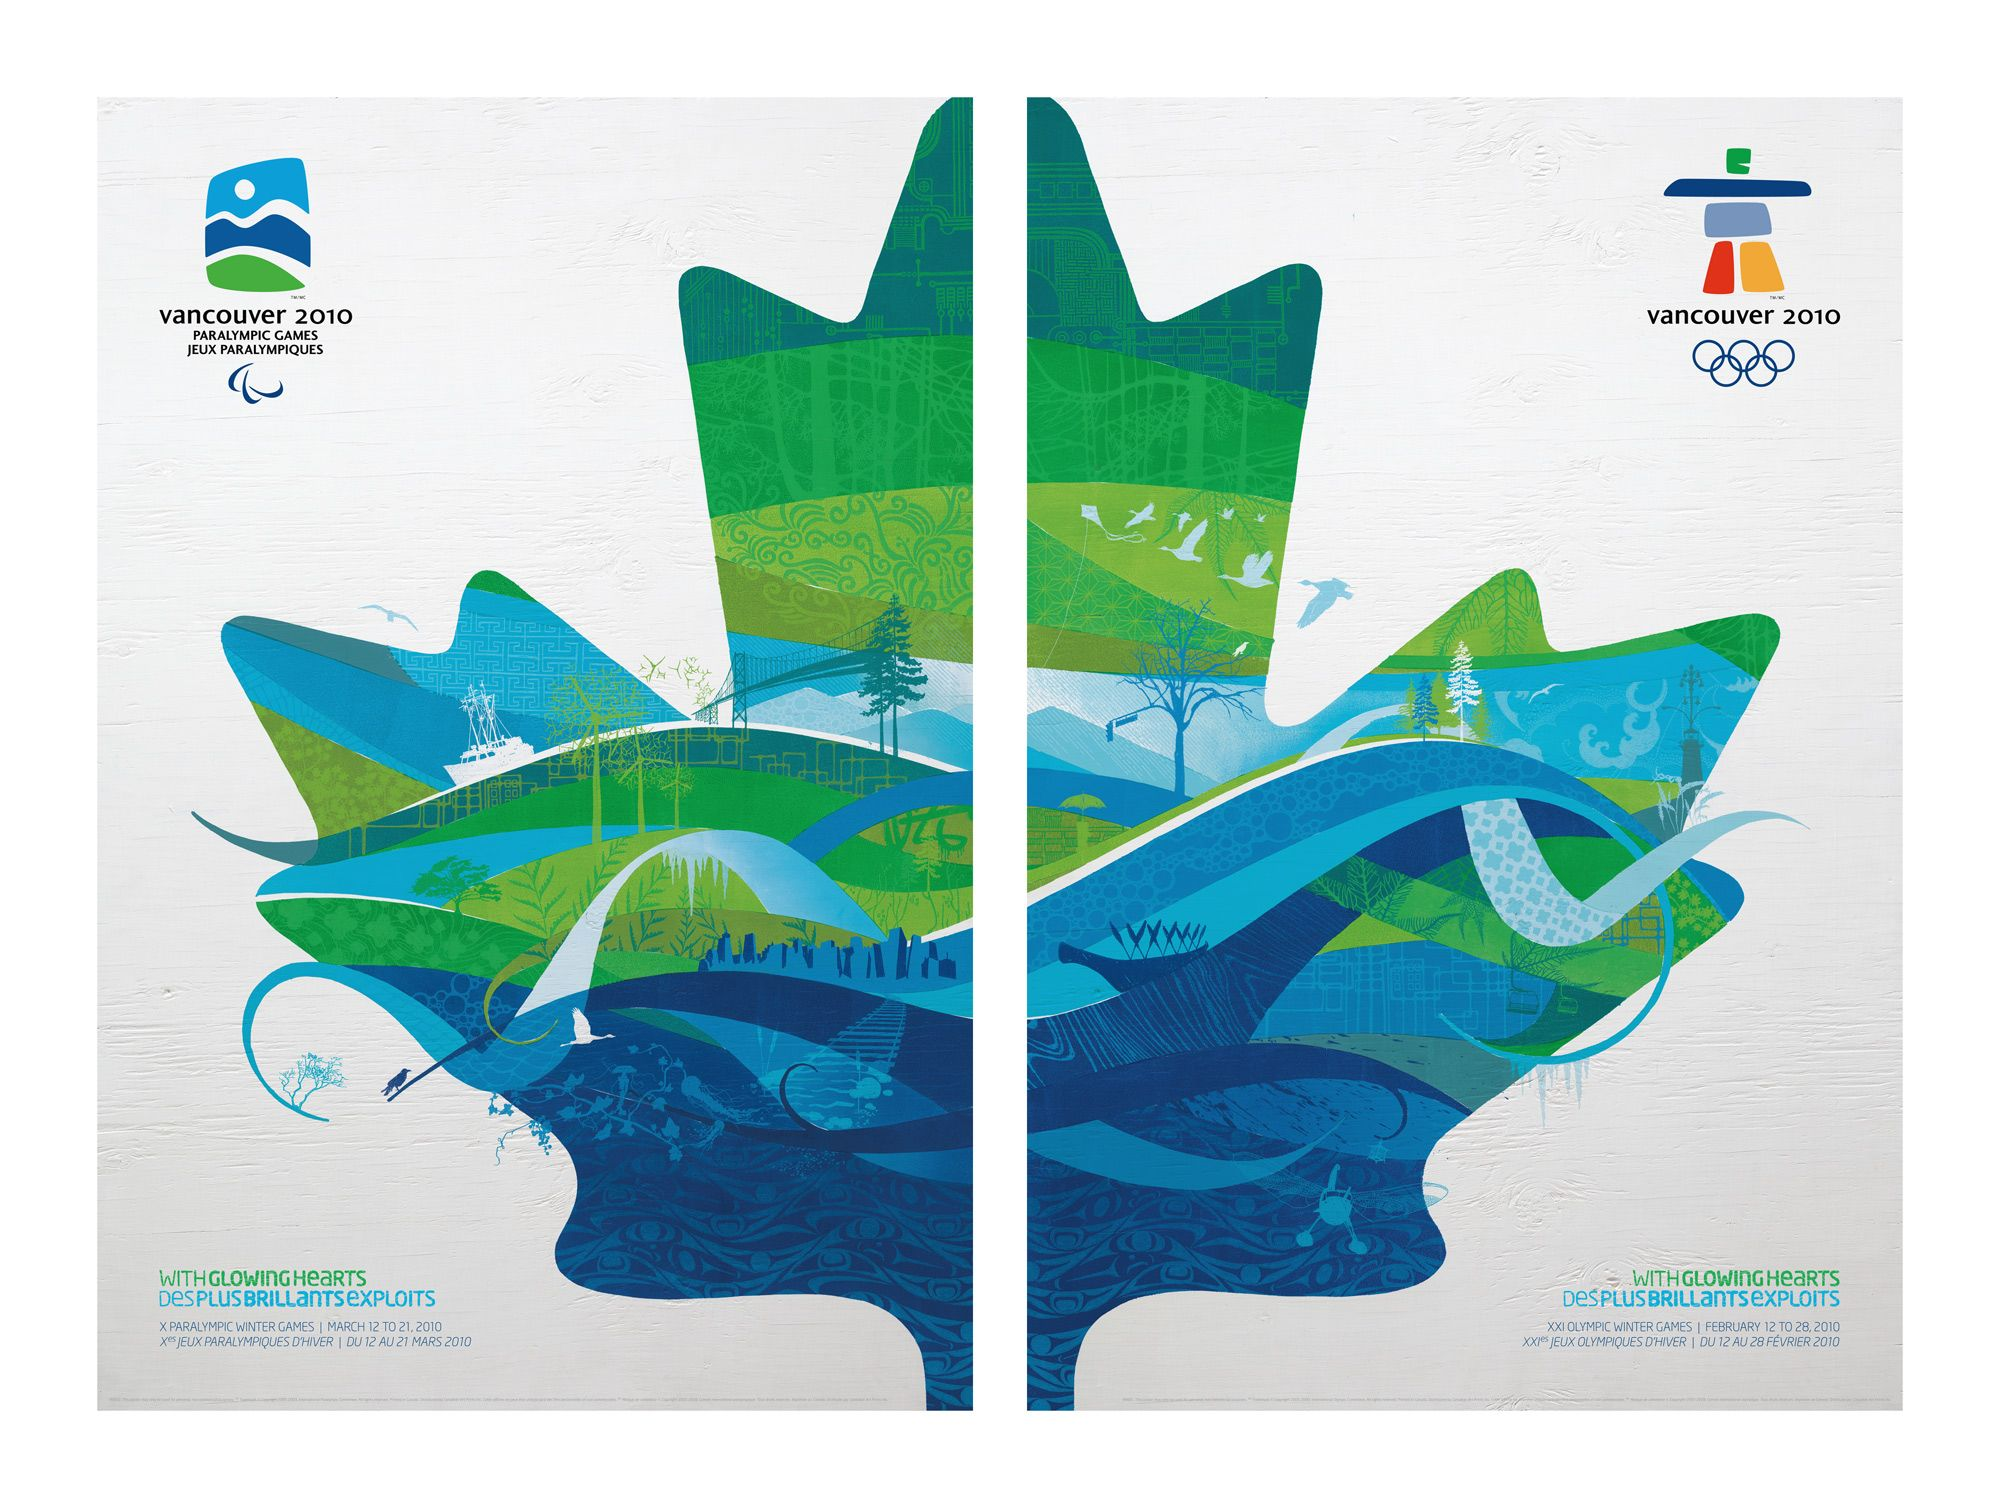 Vancouver 2010 olympics poster